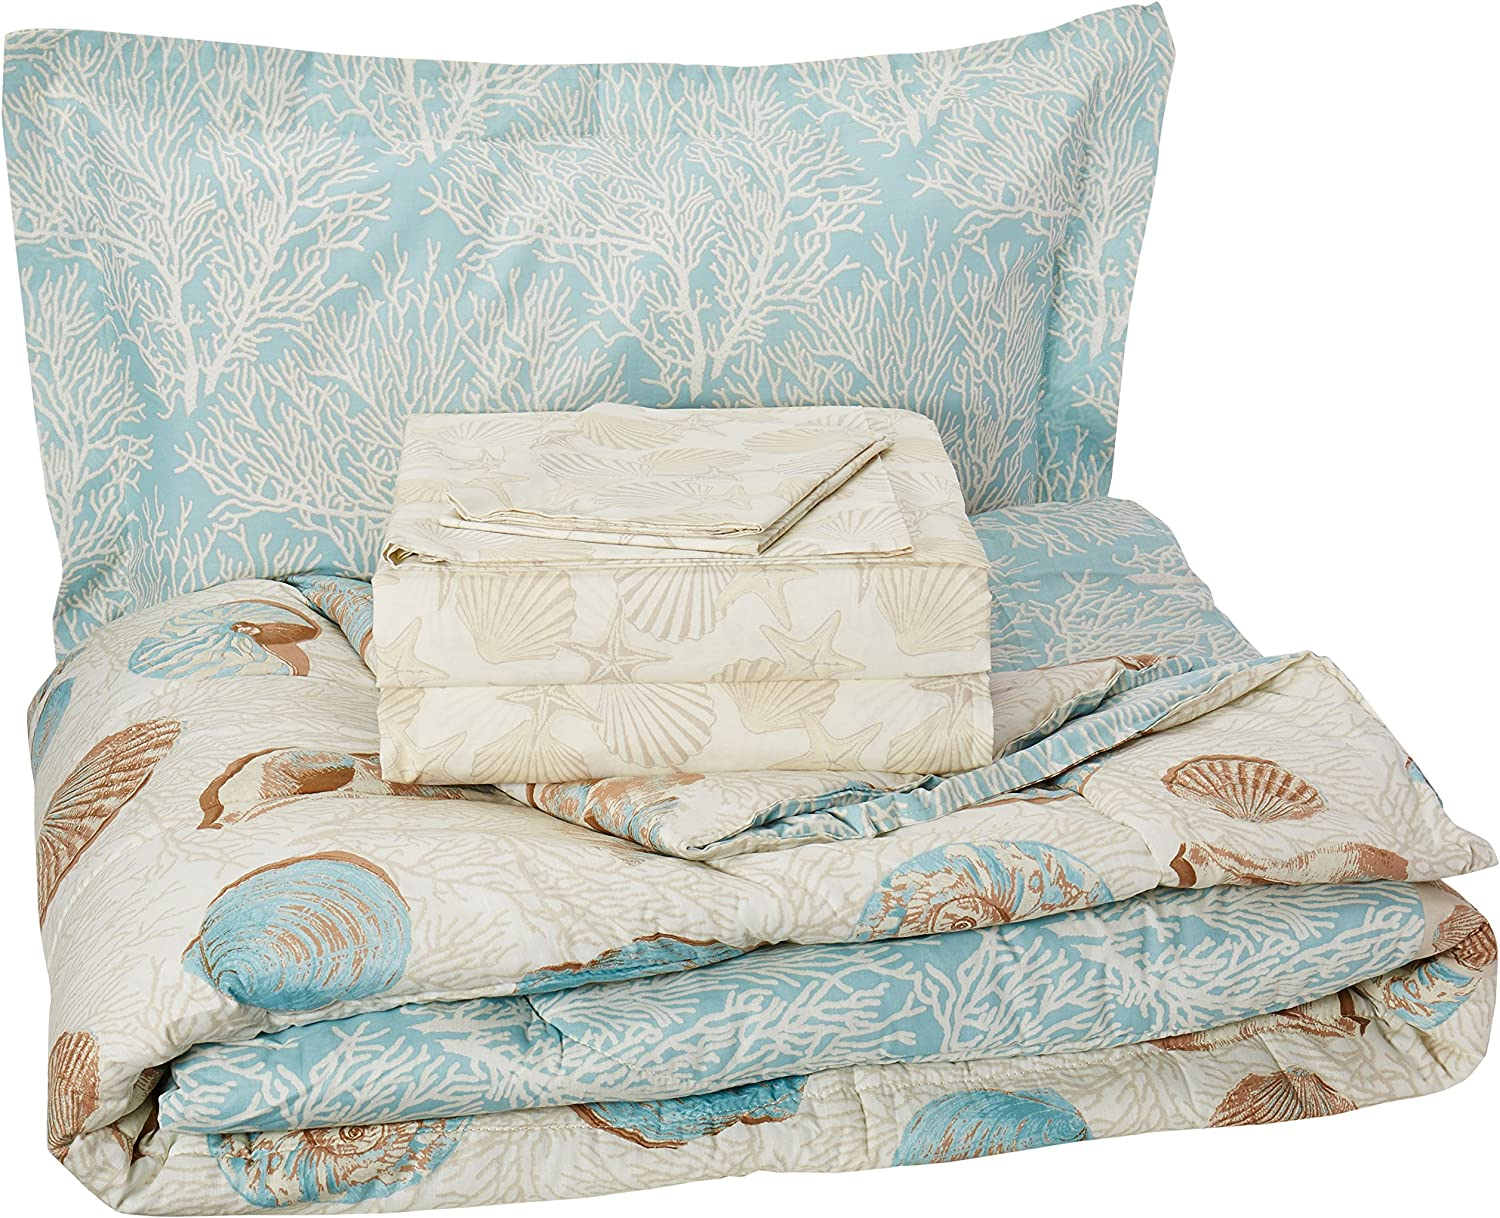 Discoveries 2A850101BL Twin Comforter Set, bluee